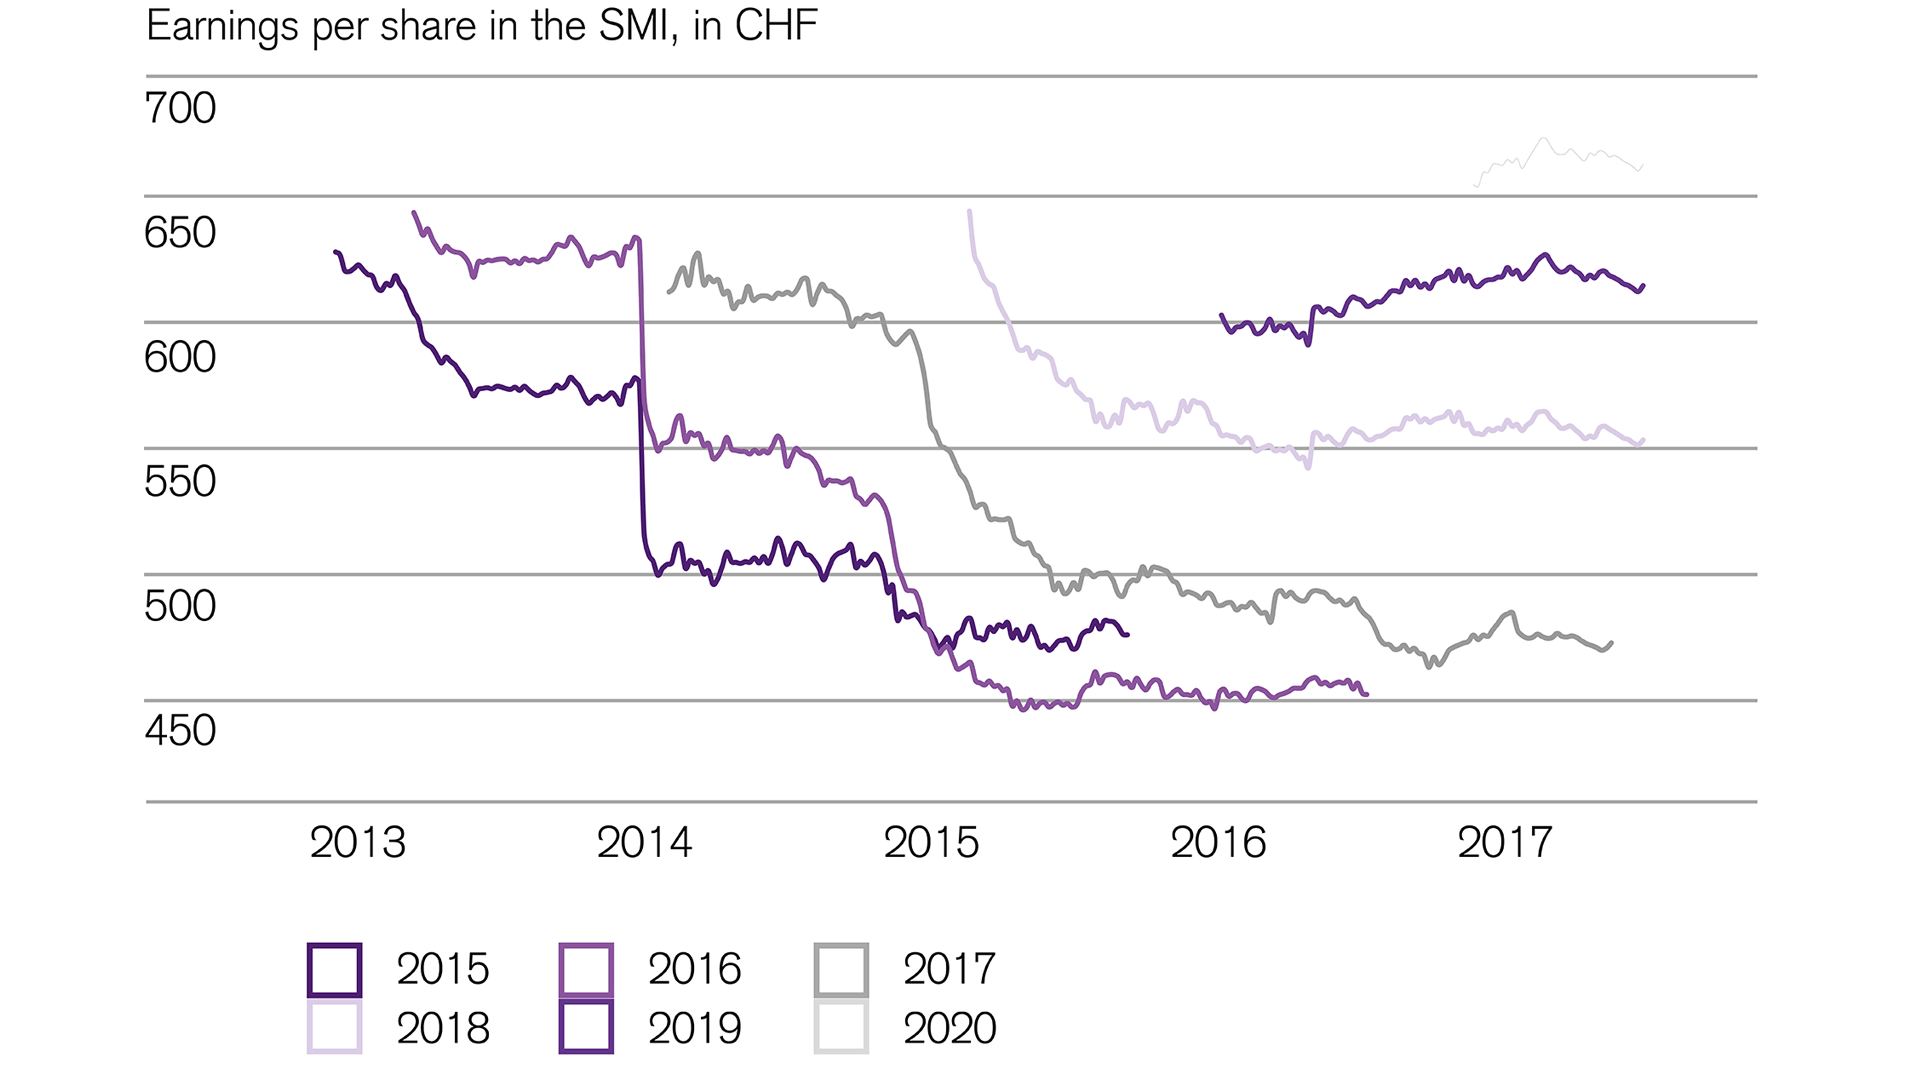 higher-earnings-expectations-for-Swiss-equities-in-2019